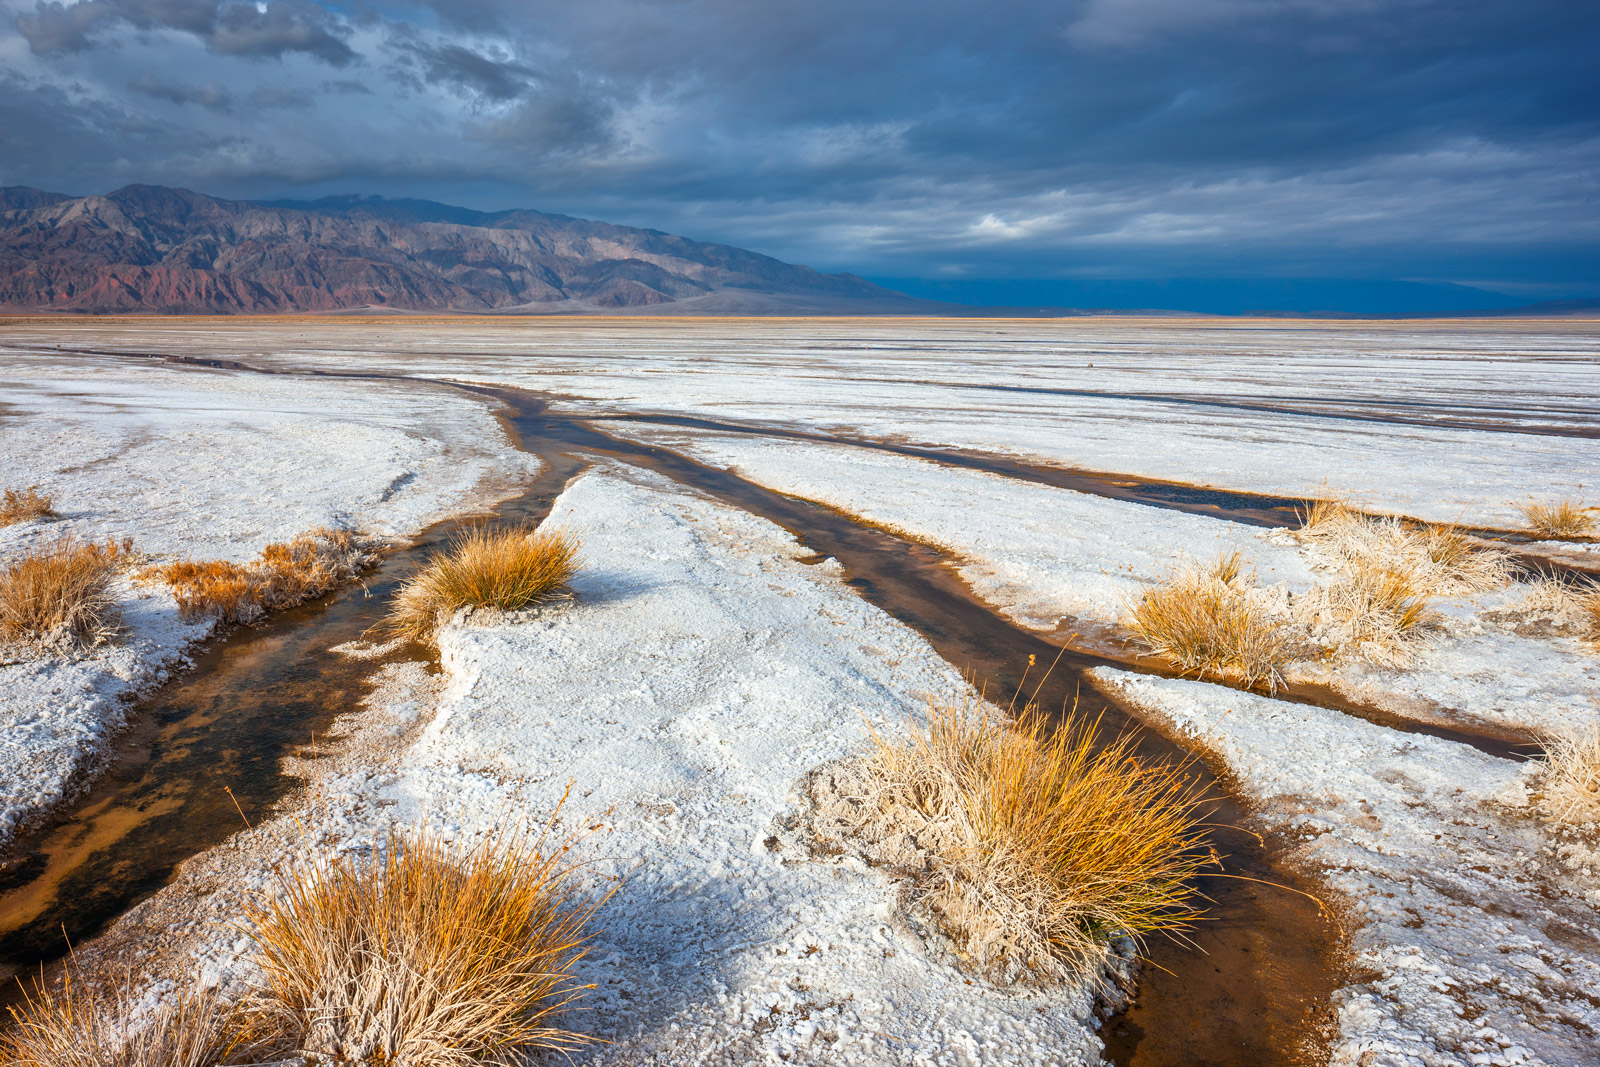 A Limited Edition, Fine Art photograph of an incoming storm over the colors and contrasts of Salt Creek flats in Death Valley...